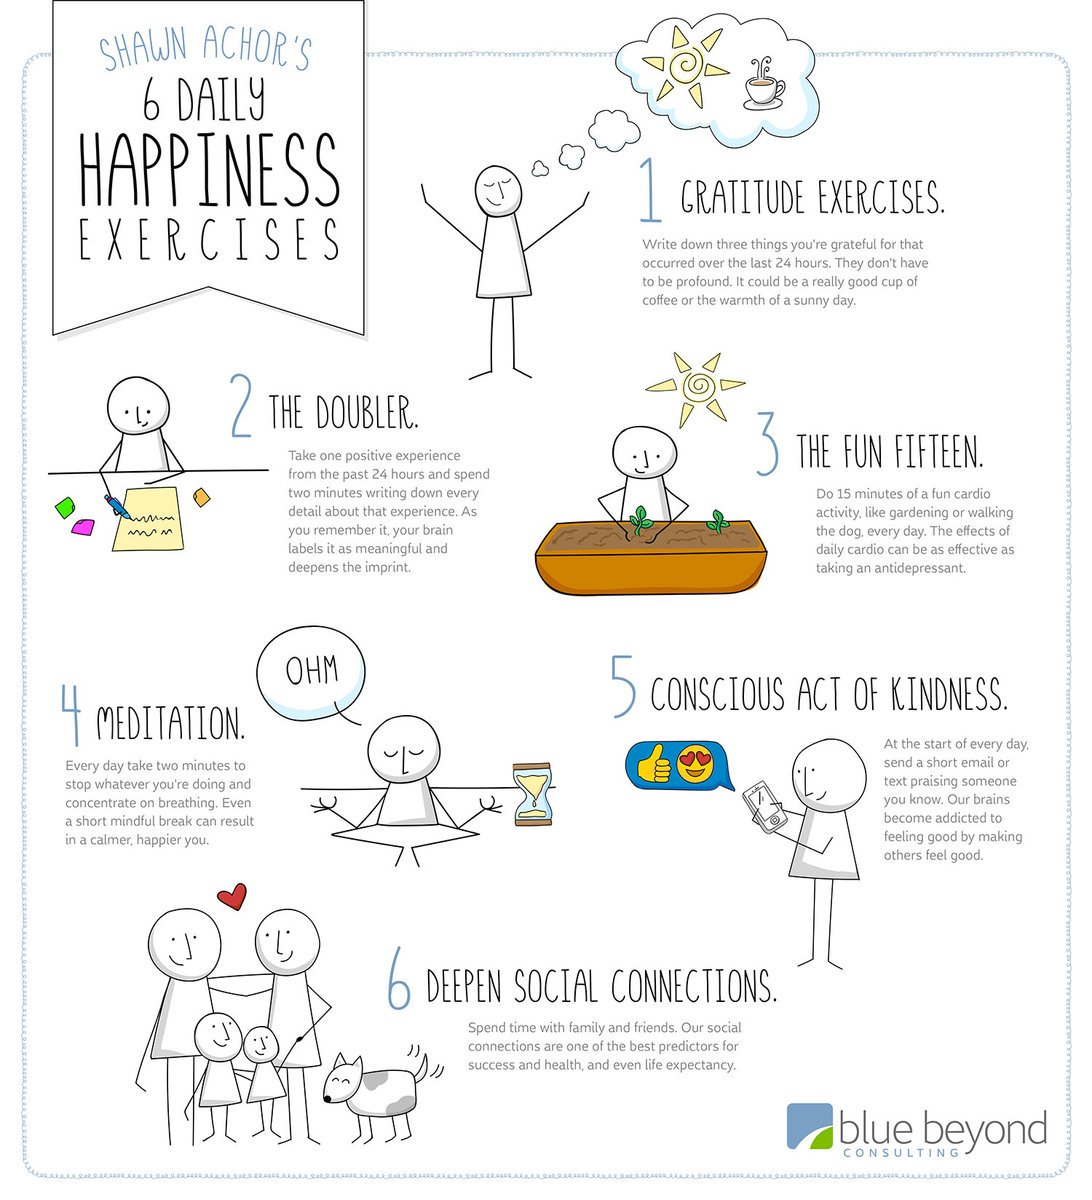 """@cfieldstyler Happiness-One of your greatest competitive advantages. exercises to + yours https://t.co/5C5ZMlEUg8 "" https://t.co/ORhXx95dNC"